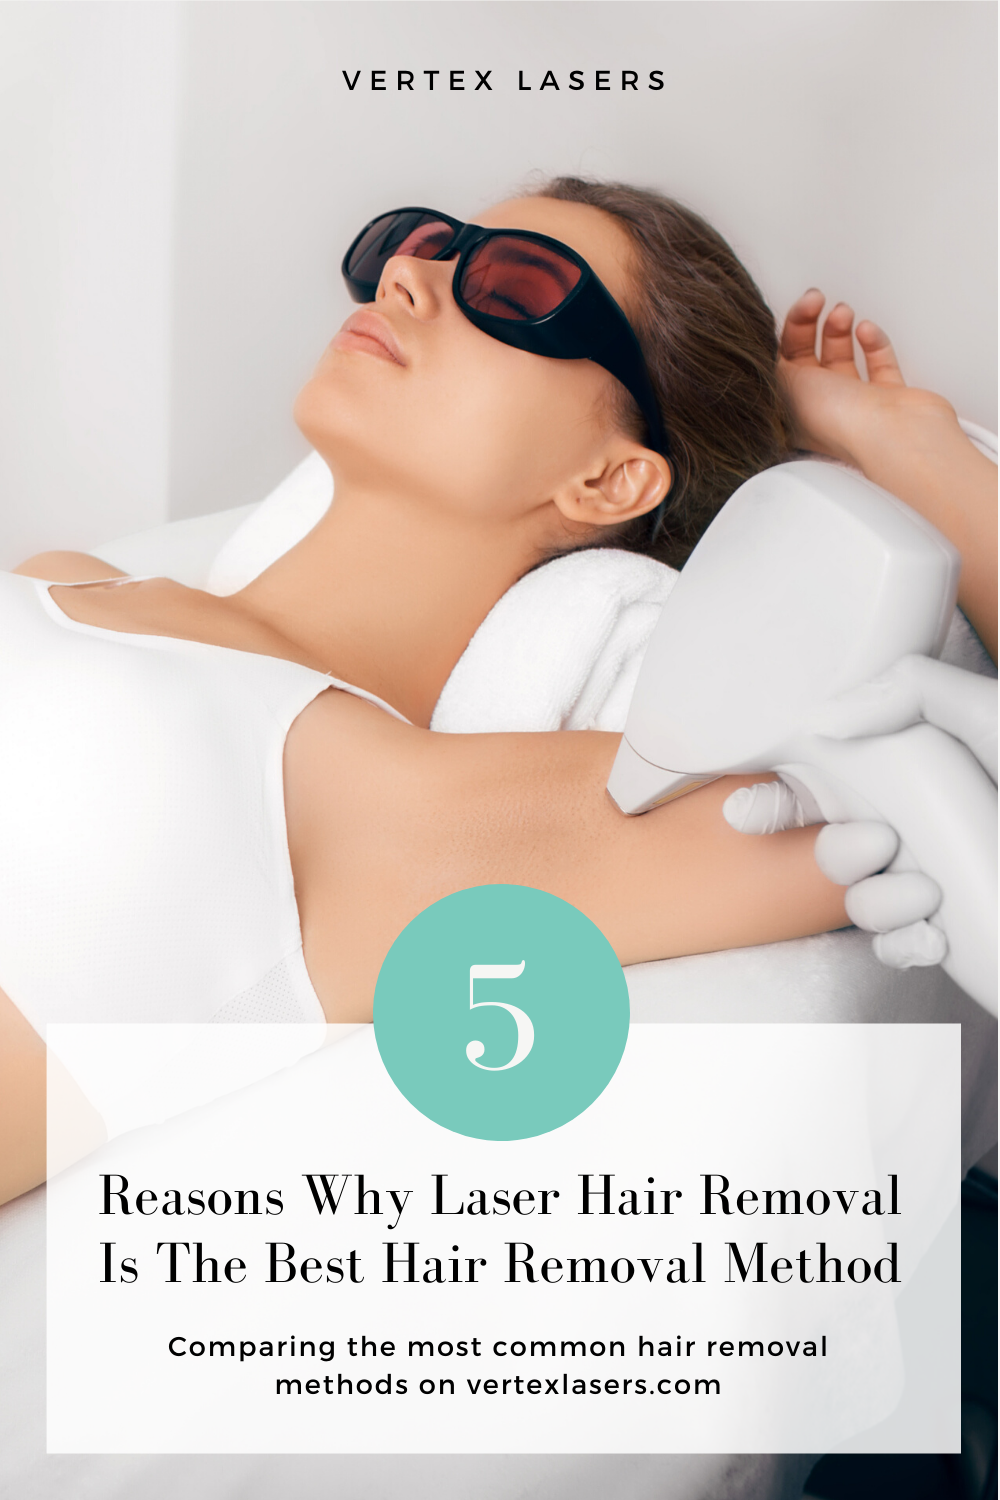 Why Laser Hair Removal Is The Best Hair Removal Method In 2020